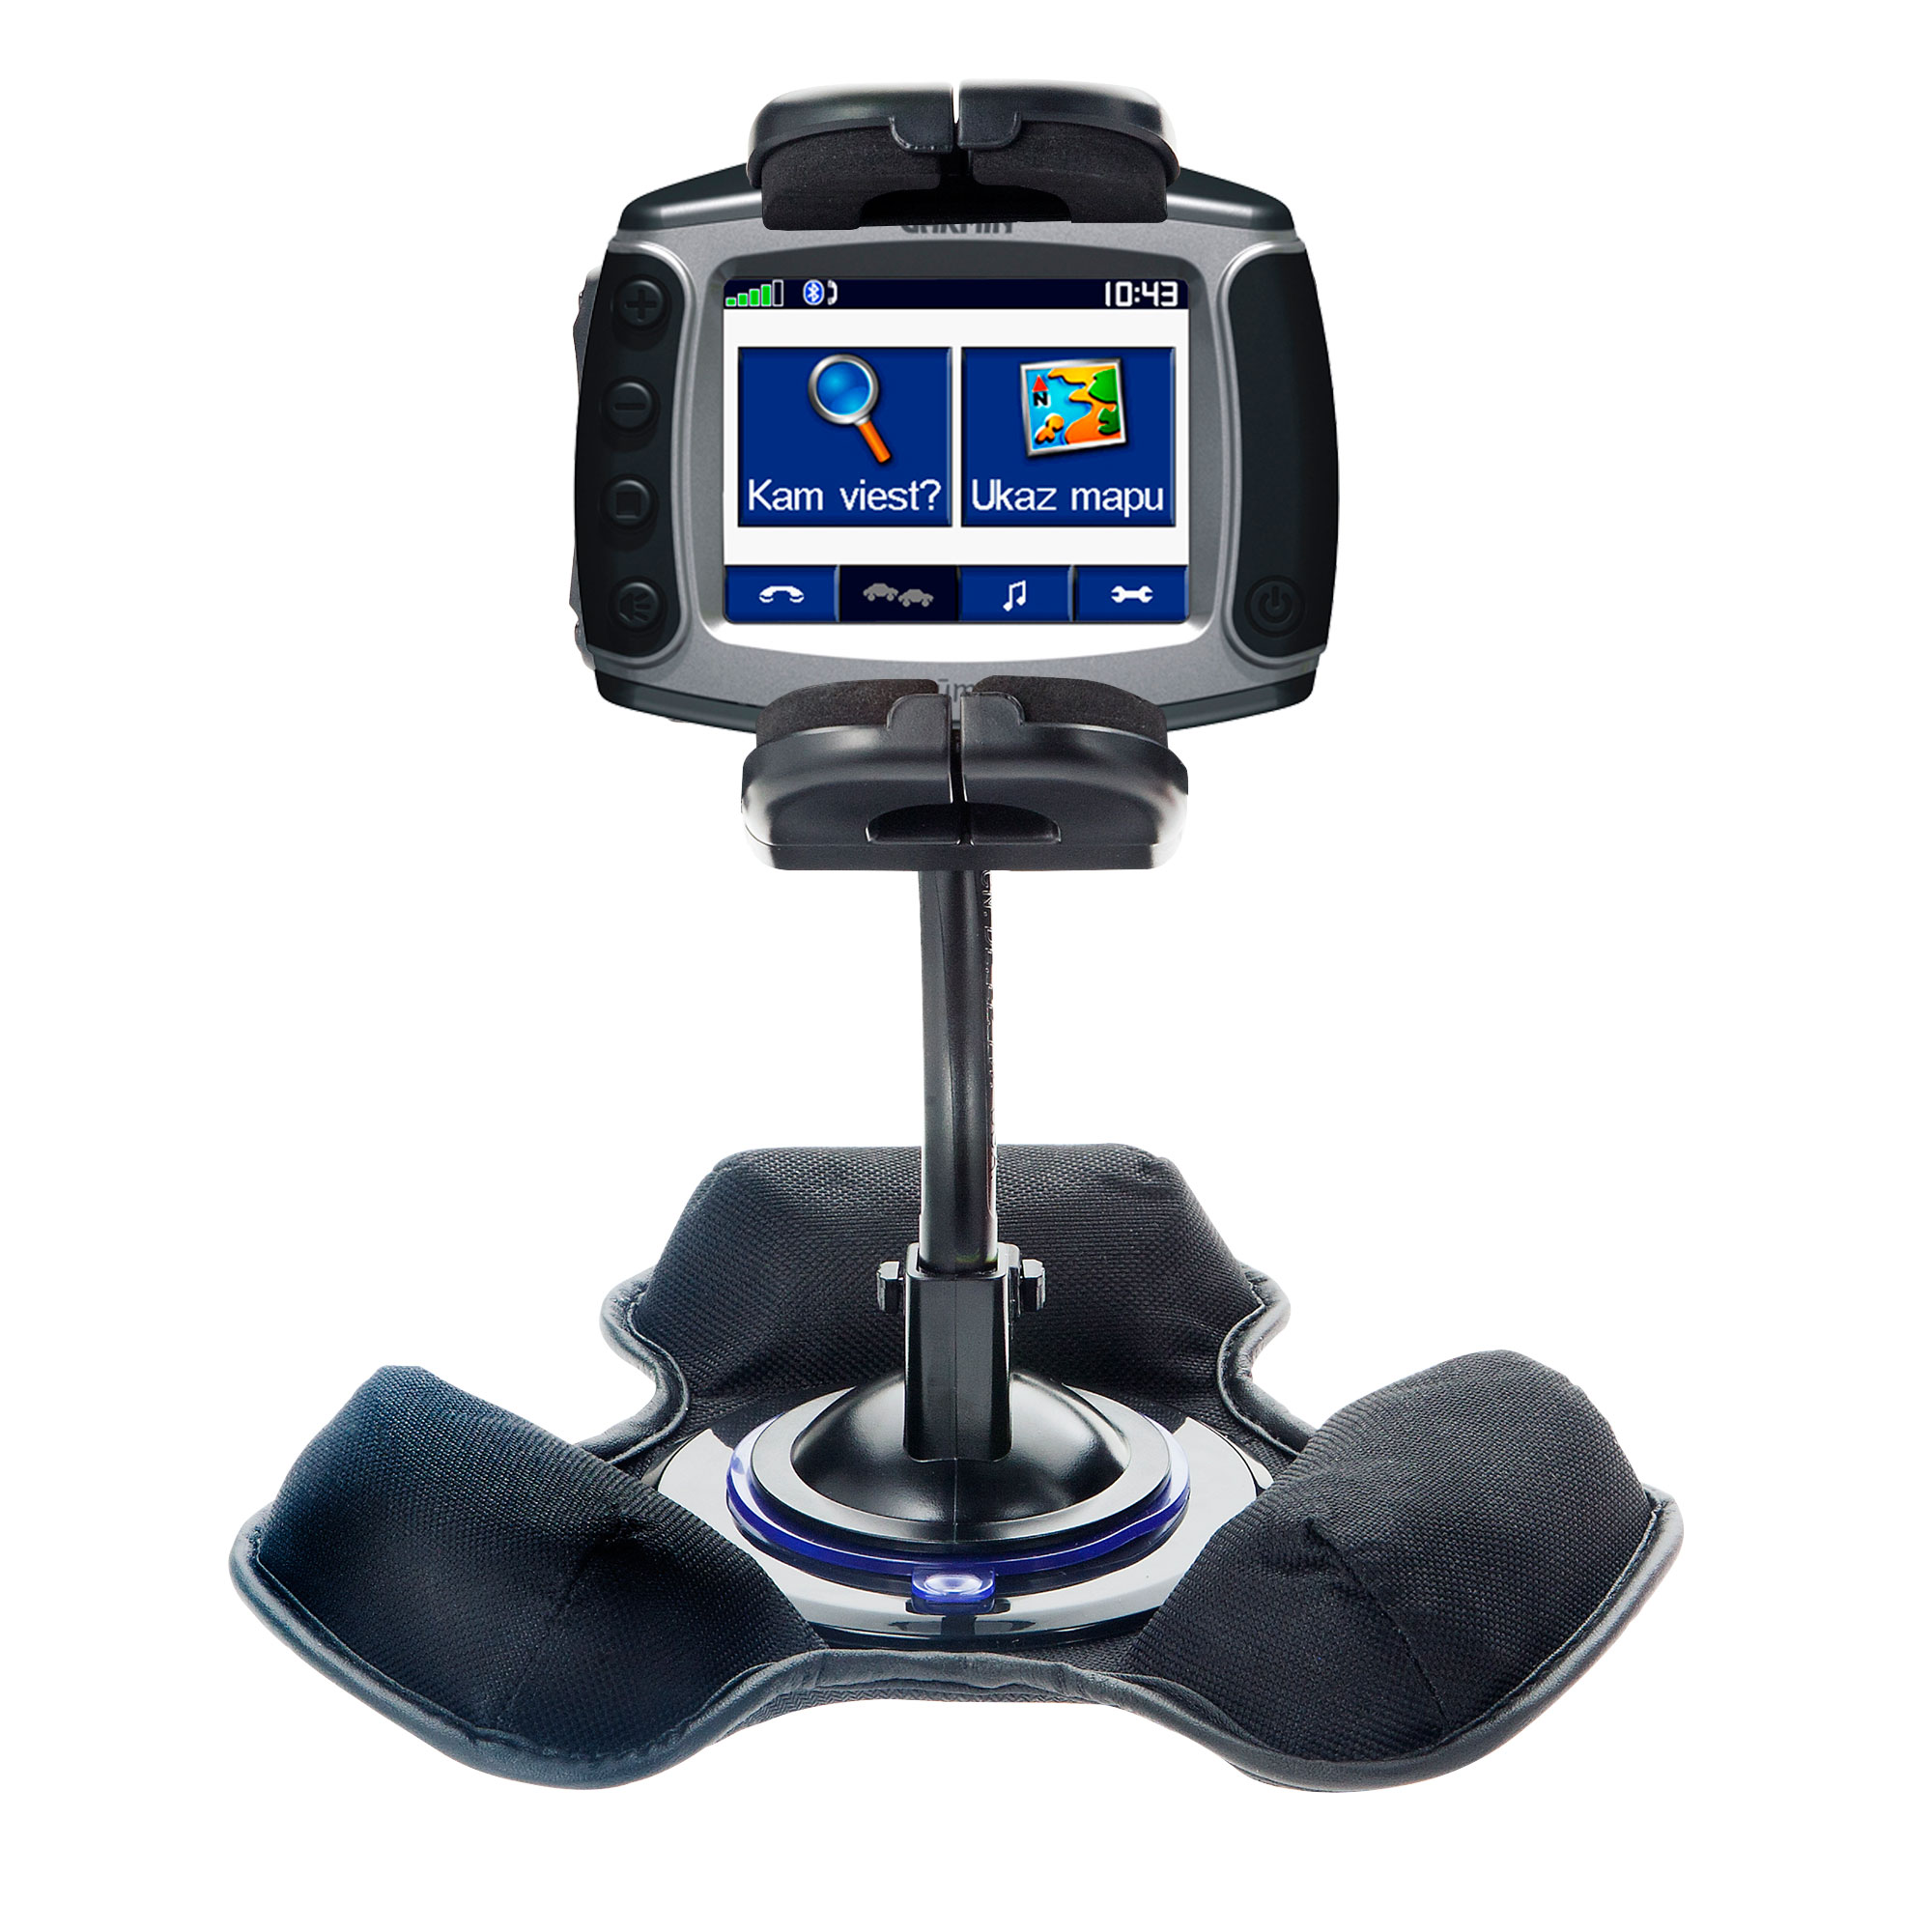 Dash and Windshield Holder compatible with the Garmin Zumo 400